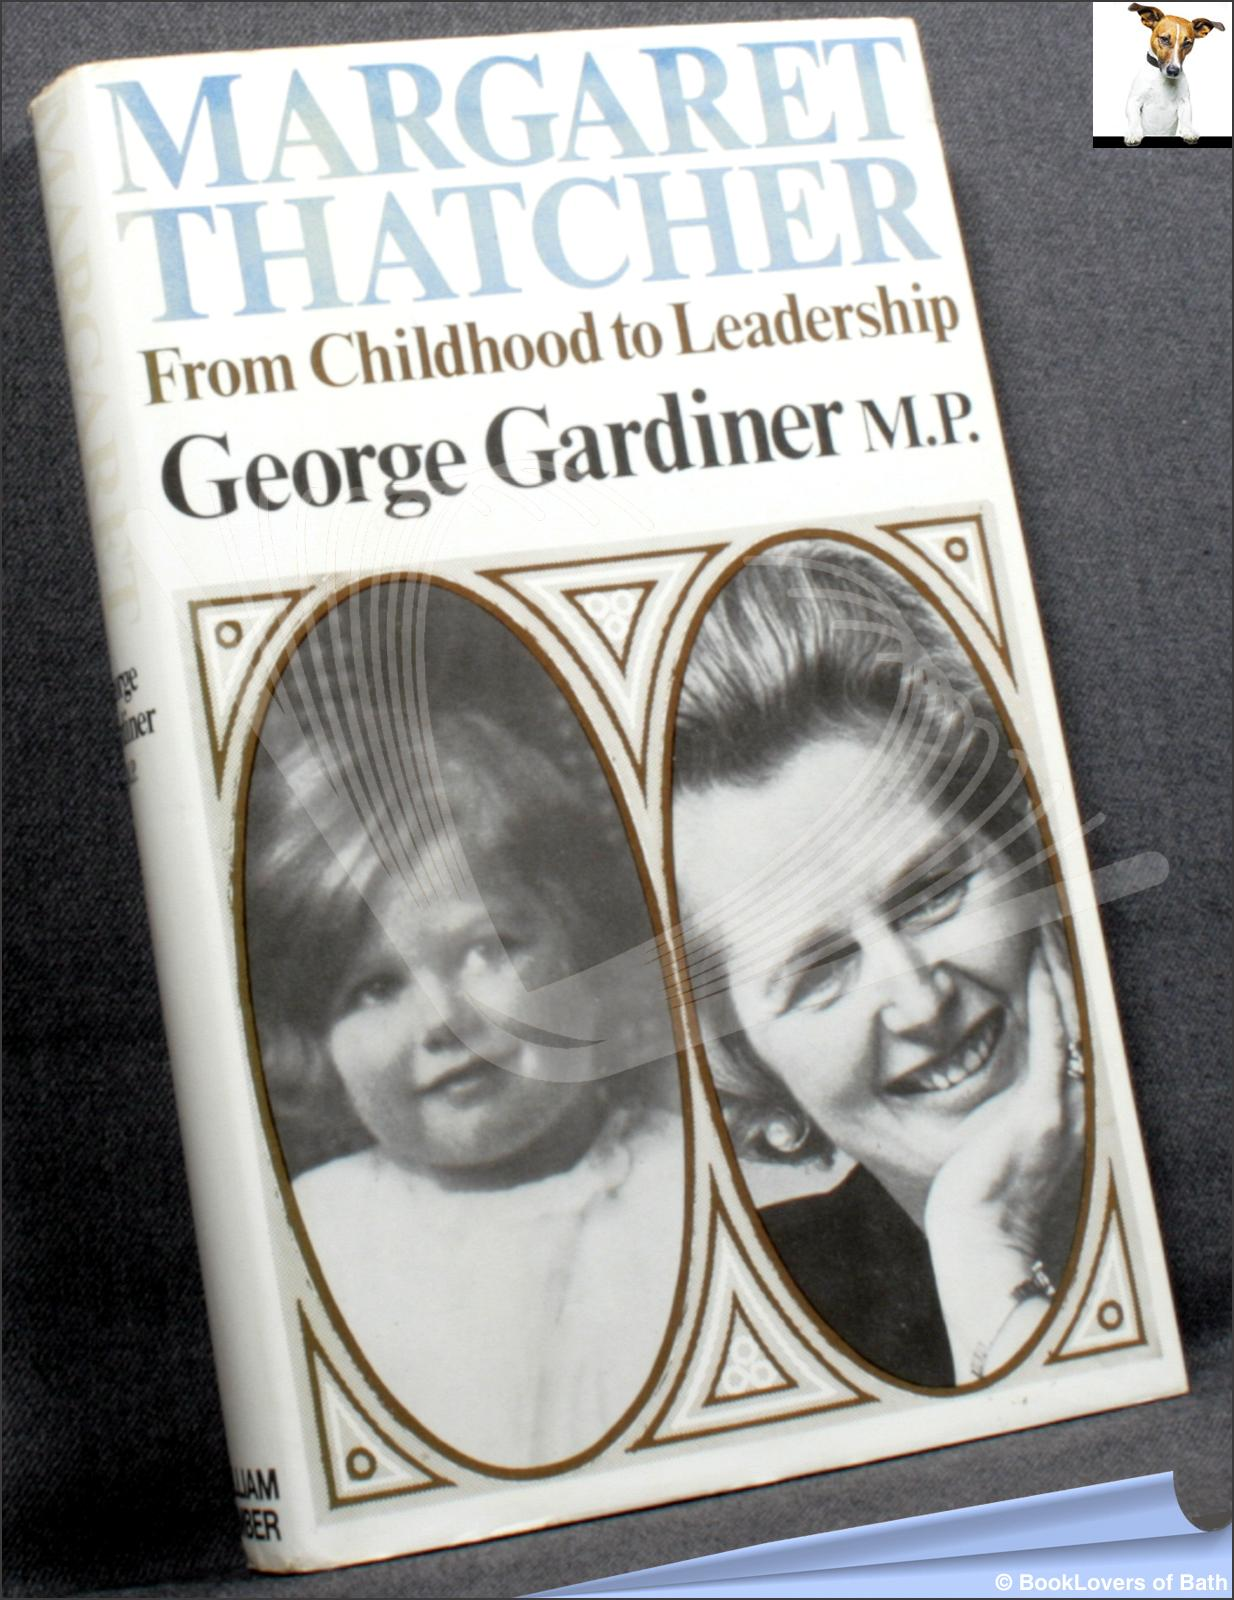 Margaret Thatcher: From Childhood to Leadership - George Gardiner